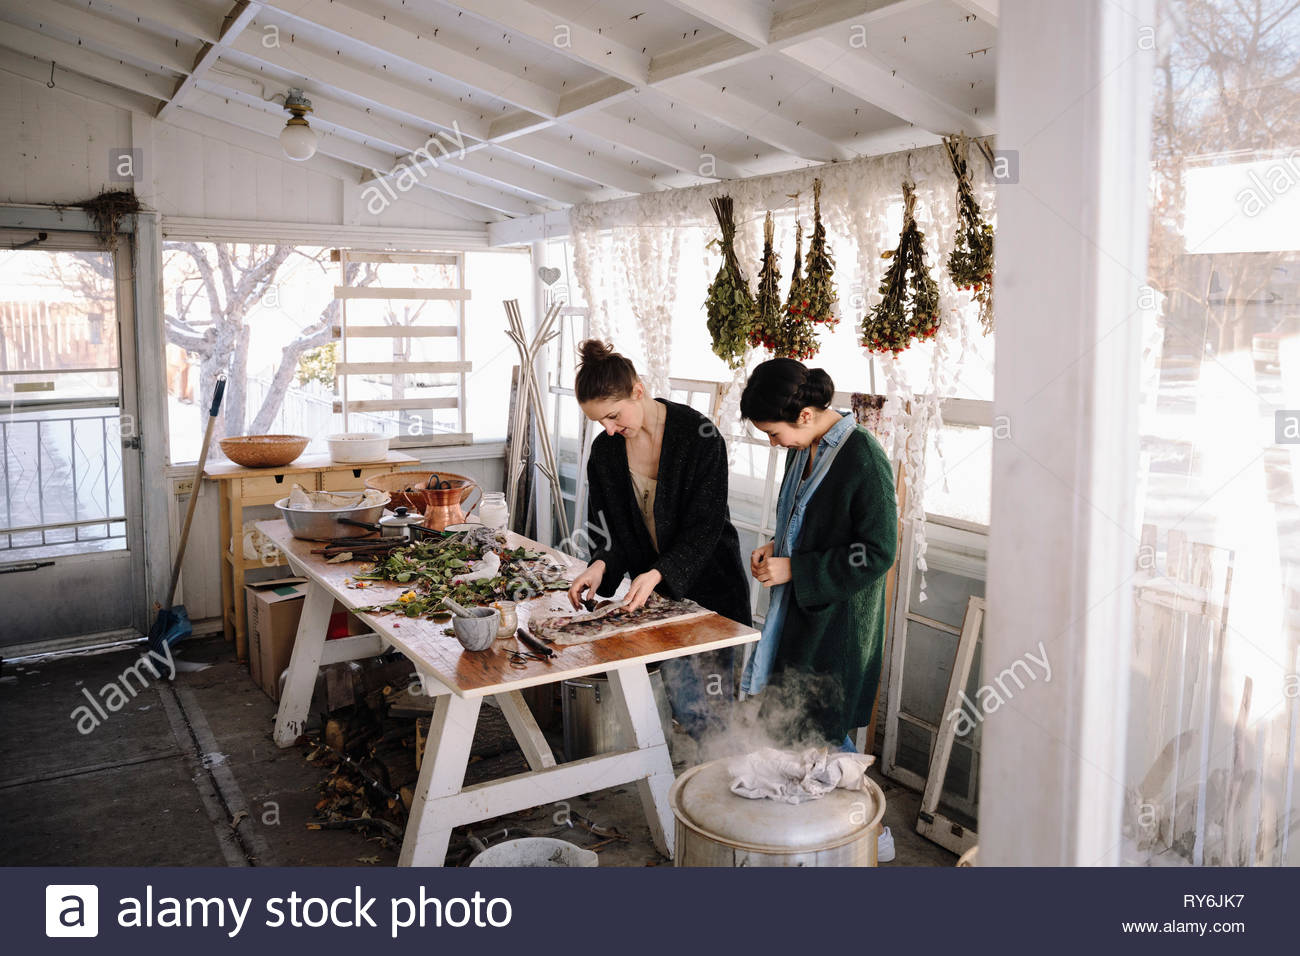 Female artists drying flowers for paper making in studio - Stock Image